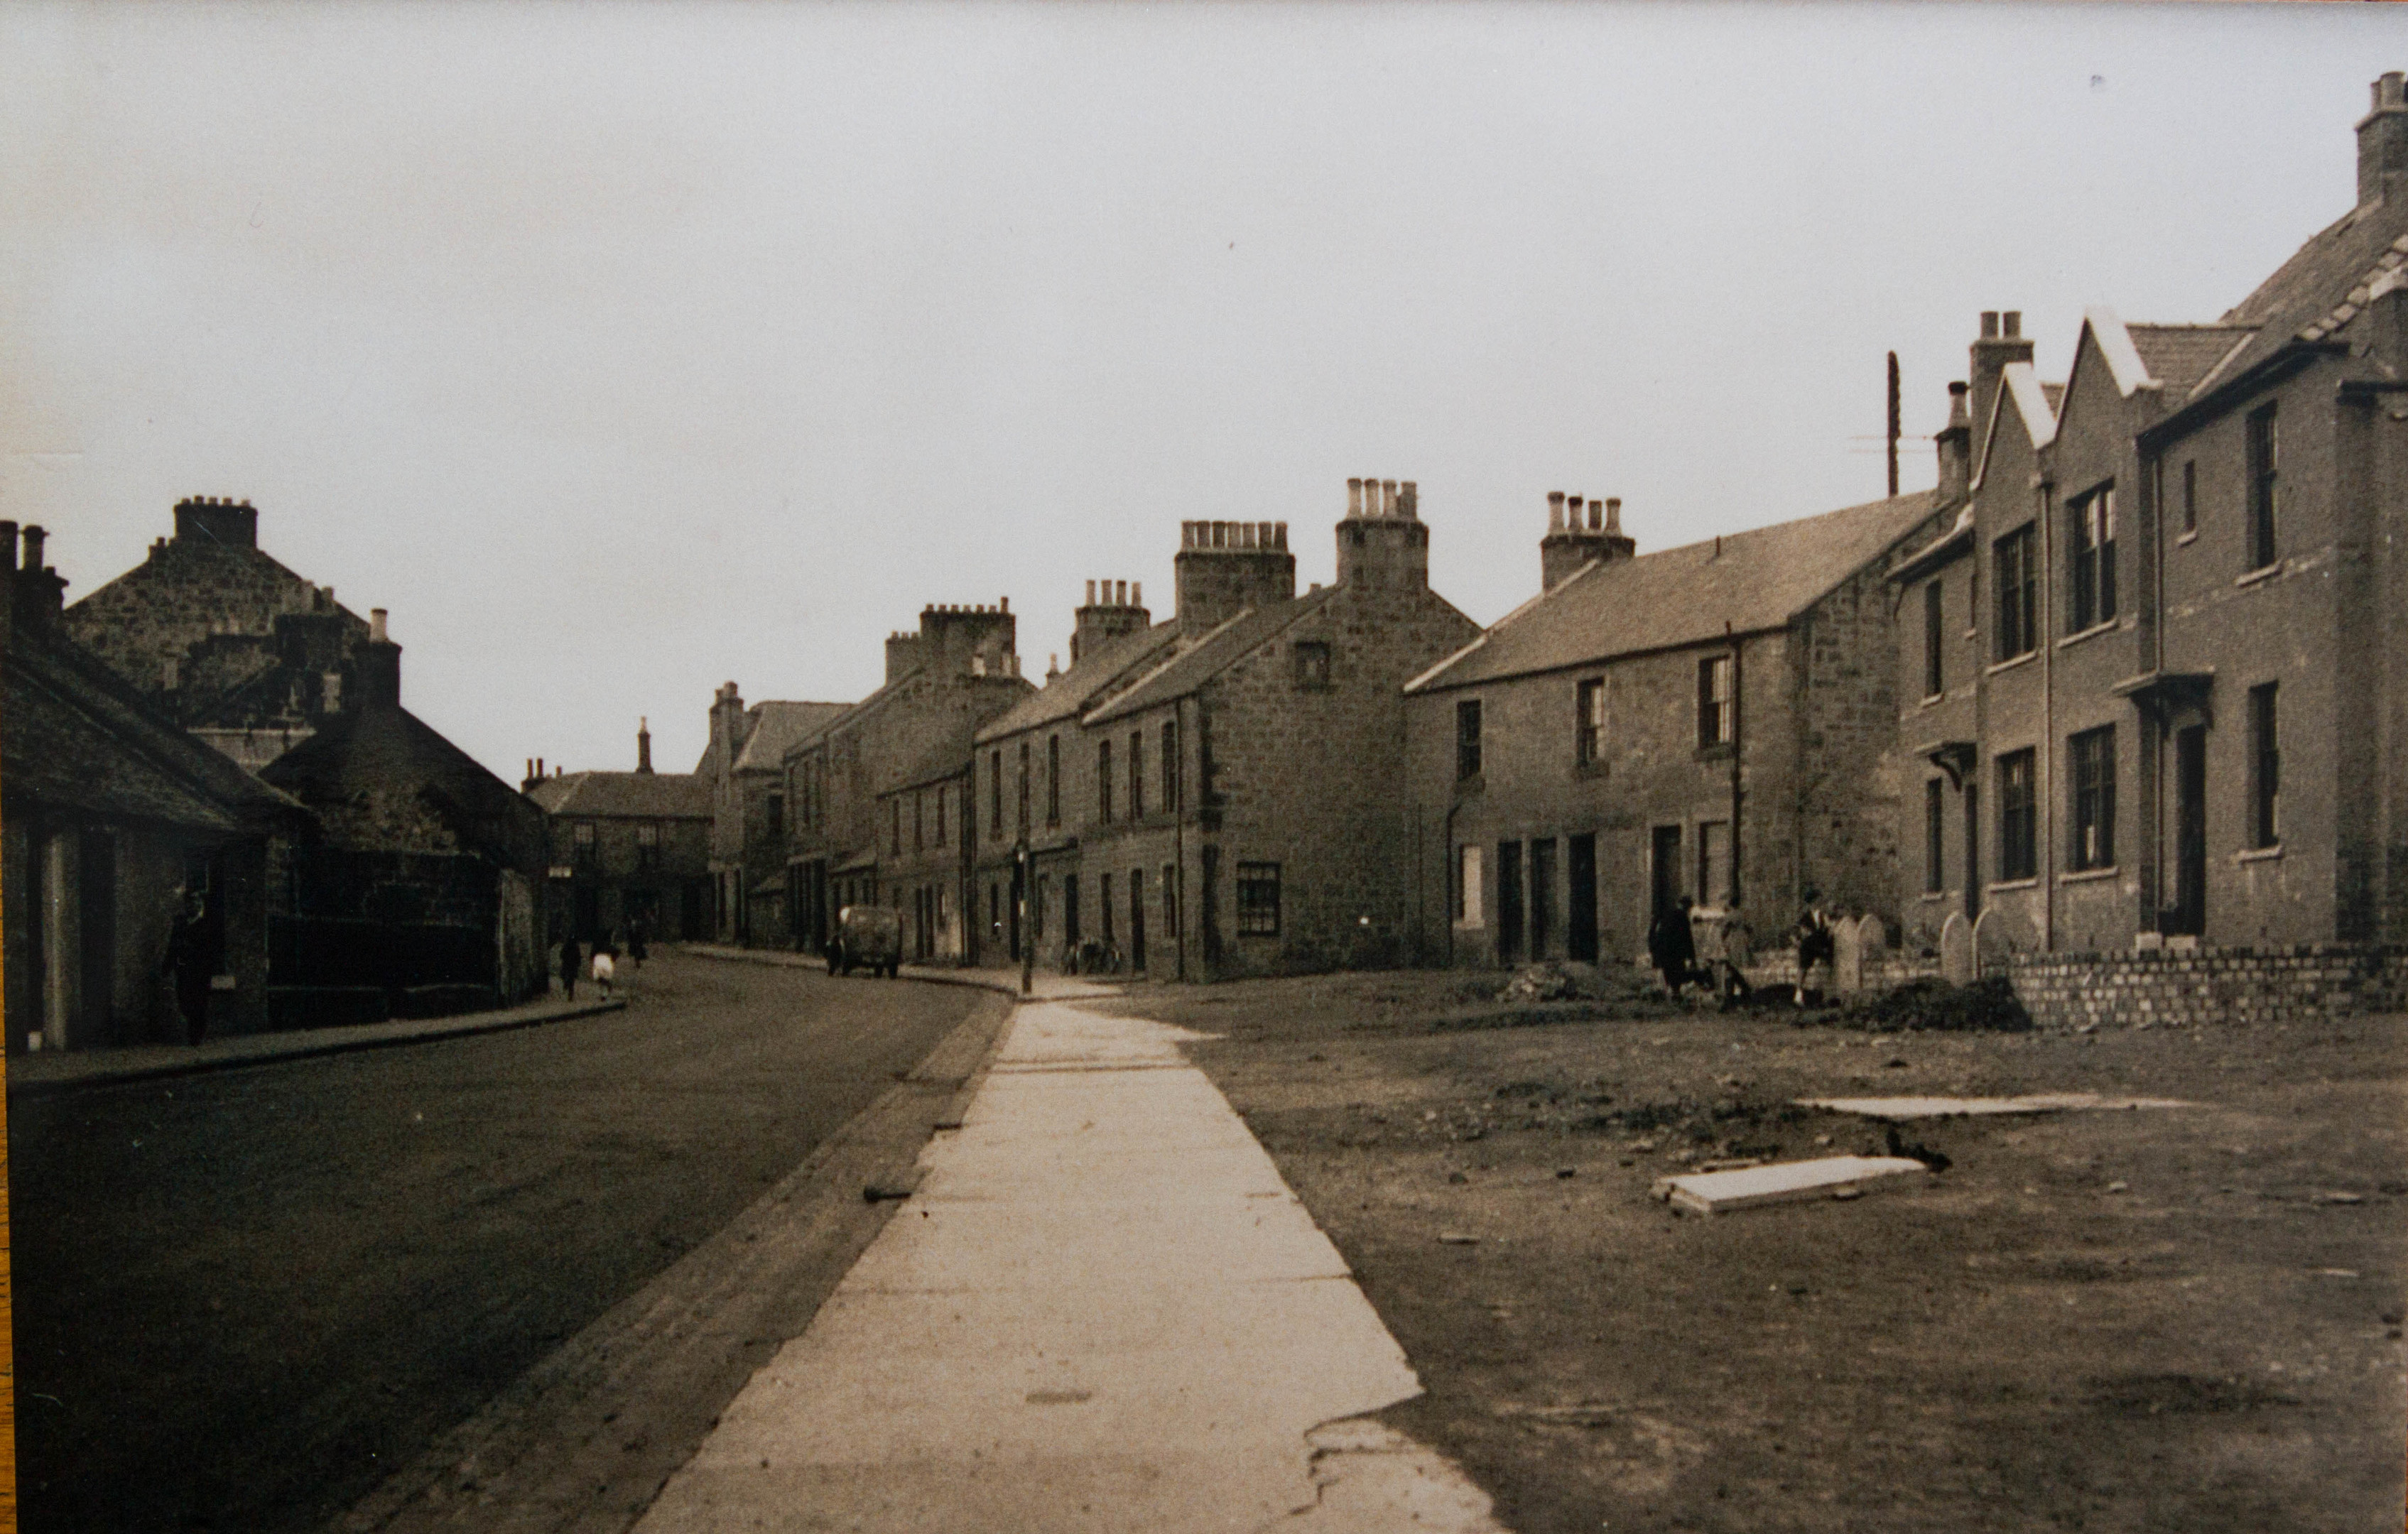 Loanhead in the 1930s